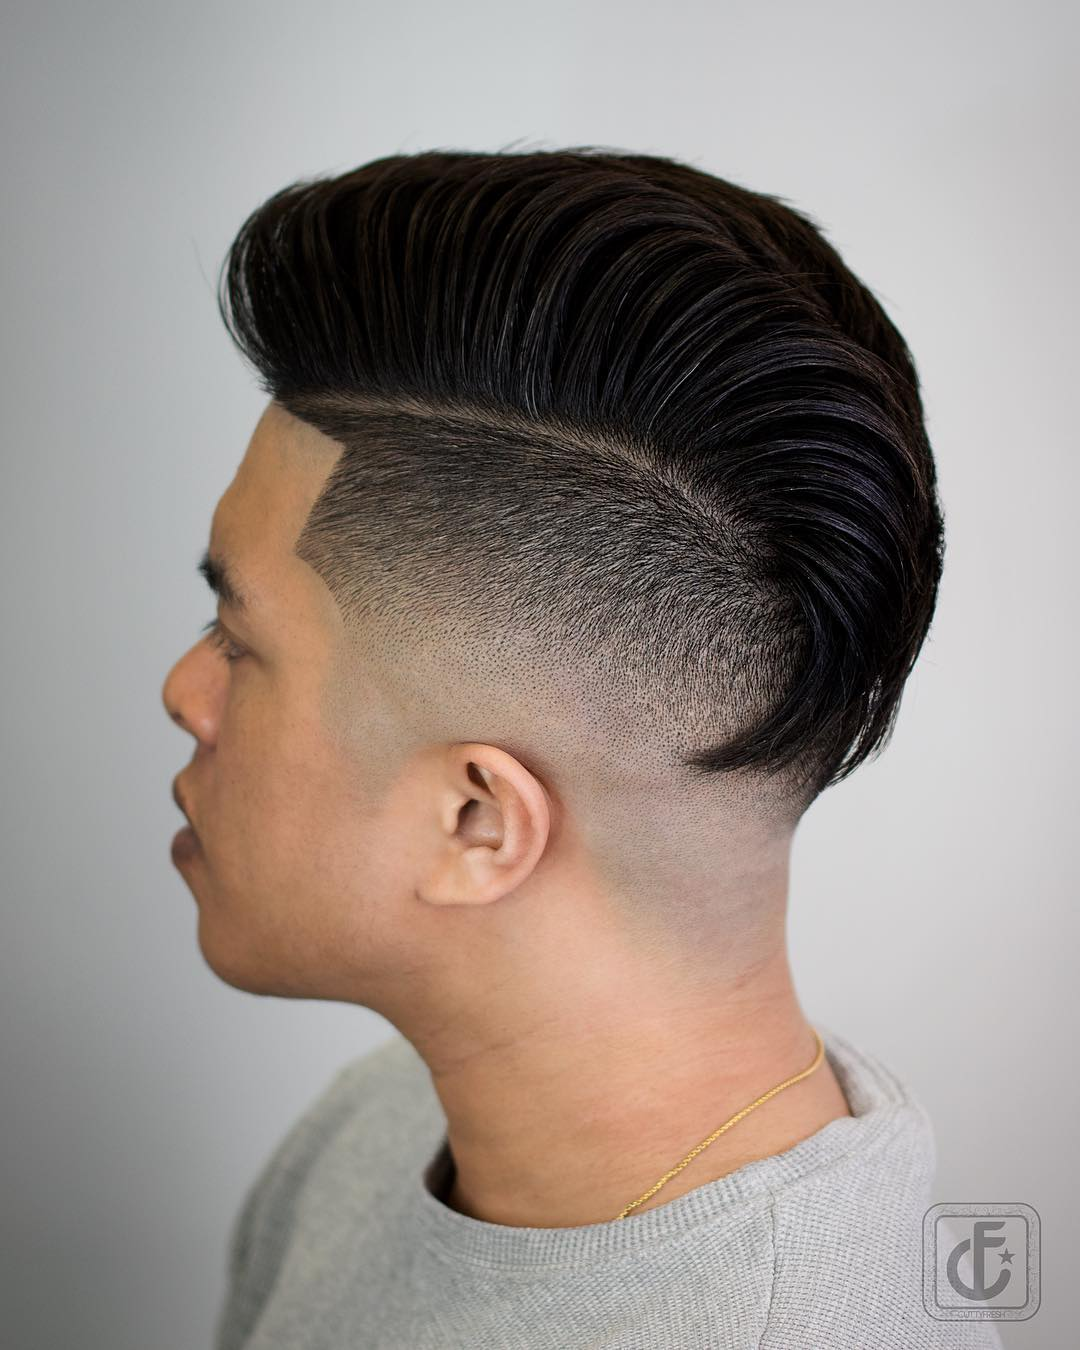 Number 3 Haircut For Boys